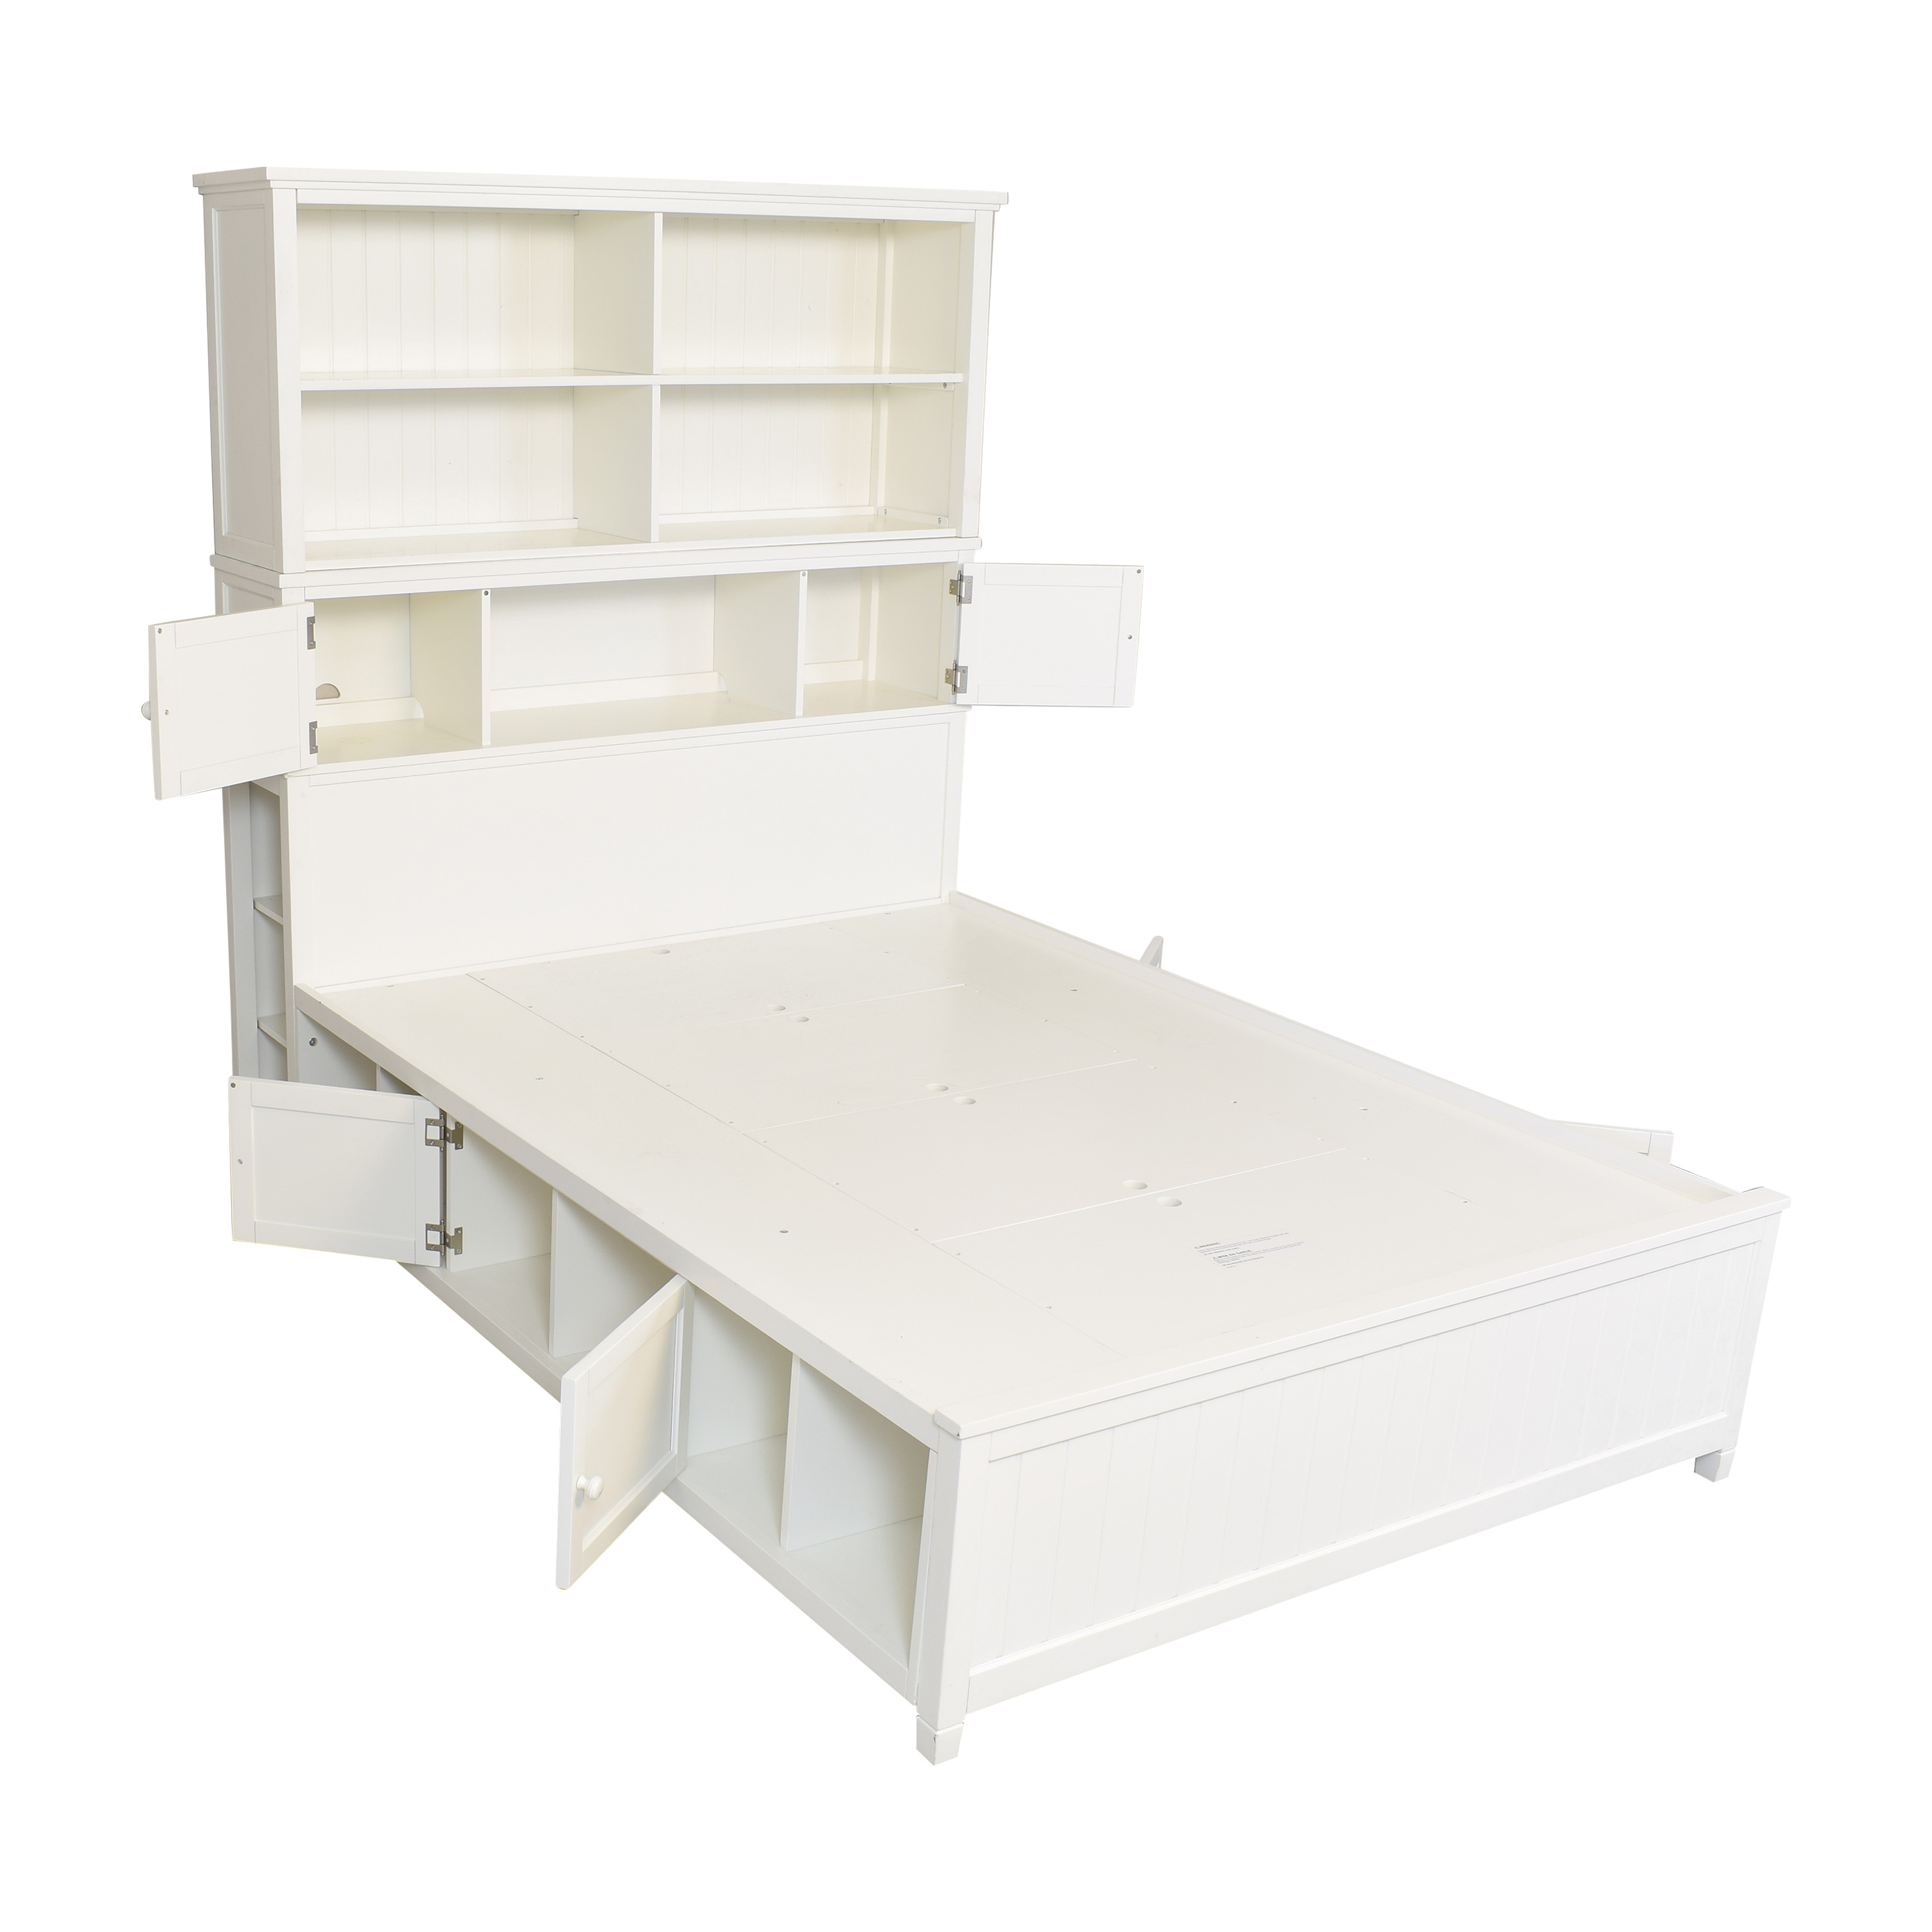 Pottery Barn Teen Pottery Barn Teen Beadboard Queen Storage Bed and Hutch on sale